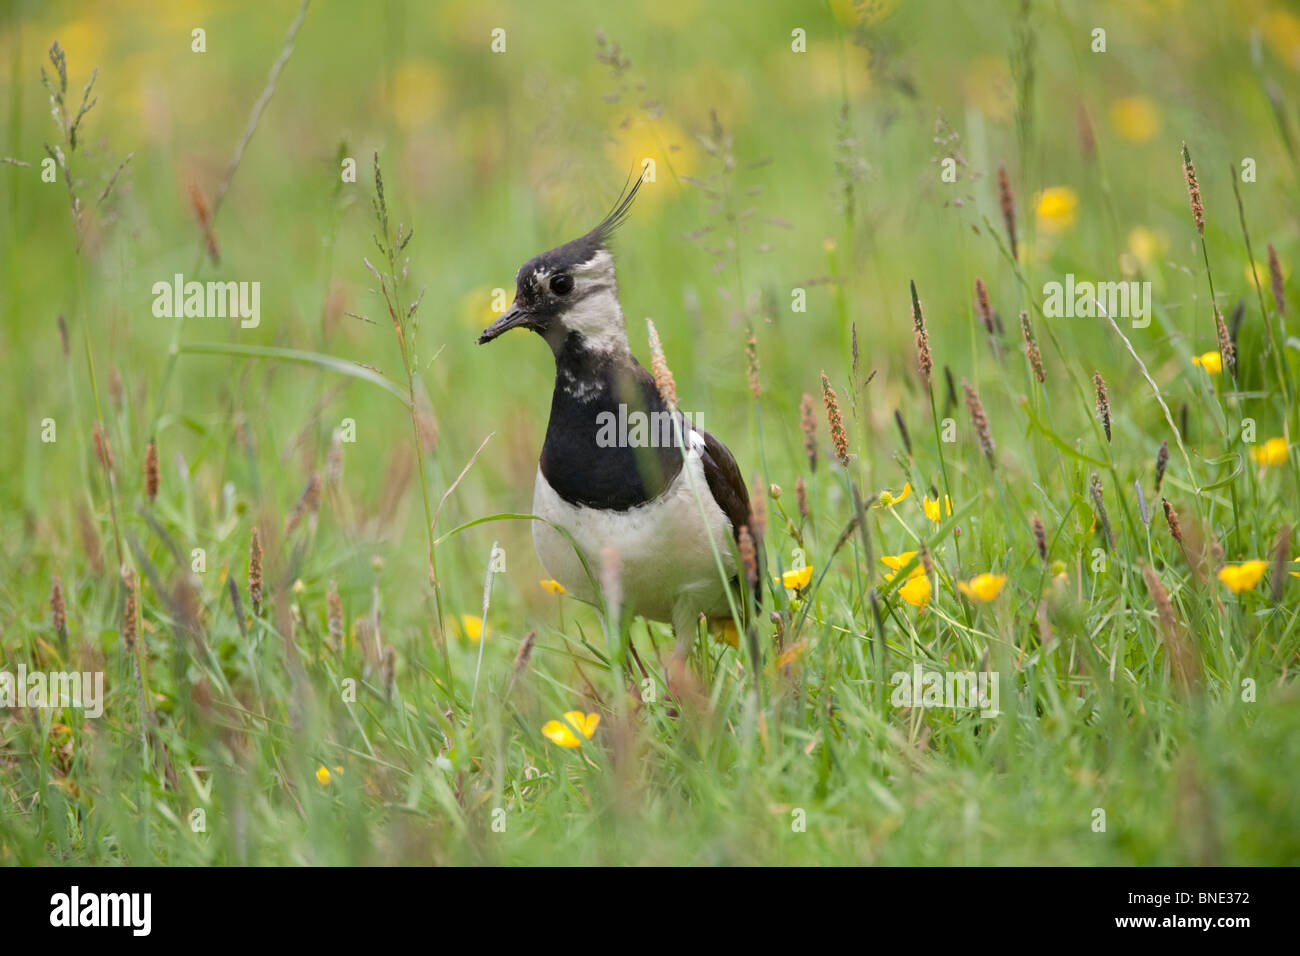 Lapwing in a field of buttercups. Stock Photo